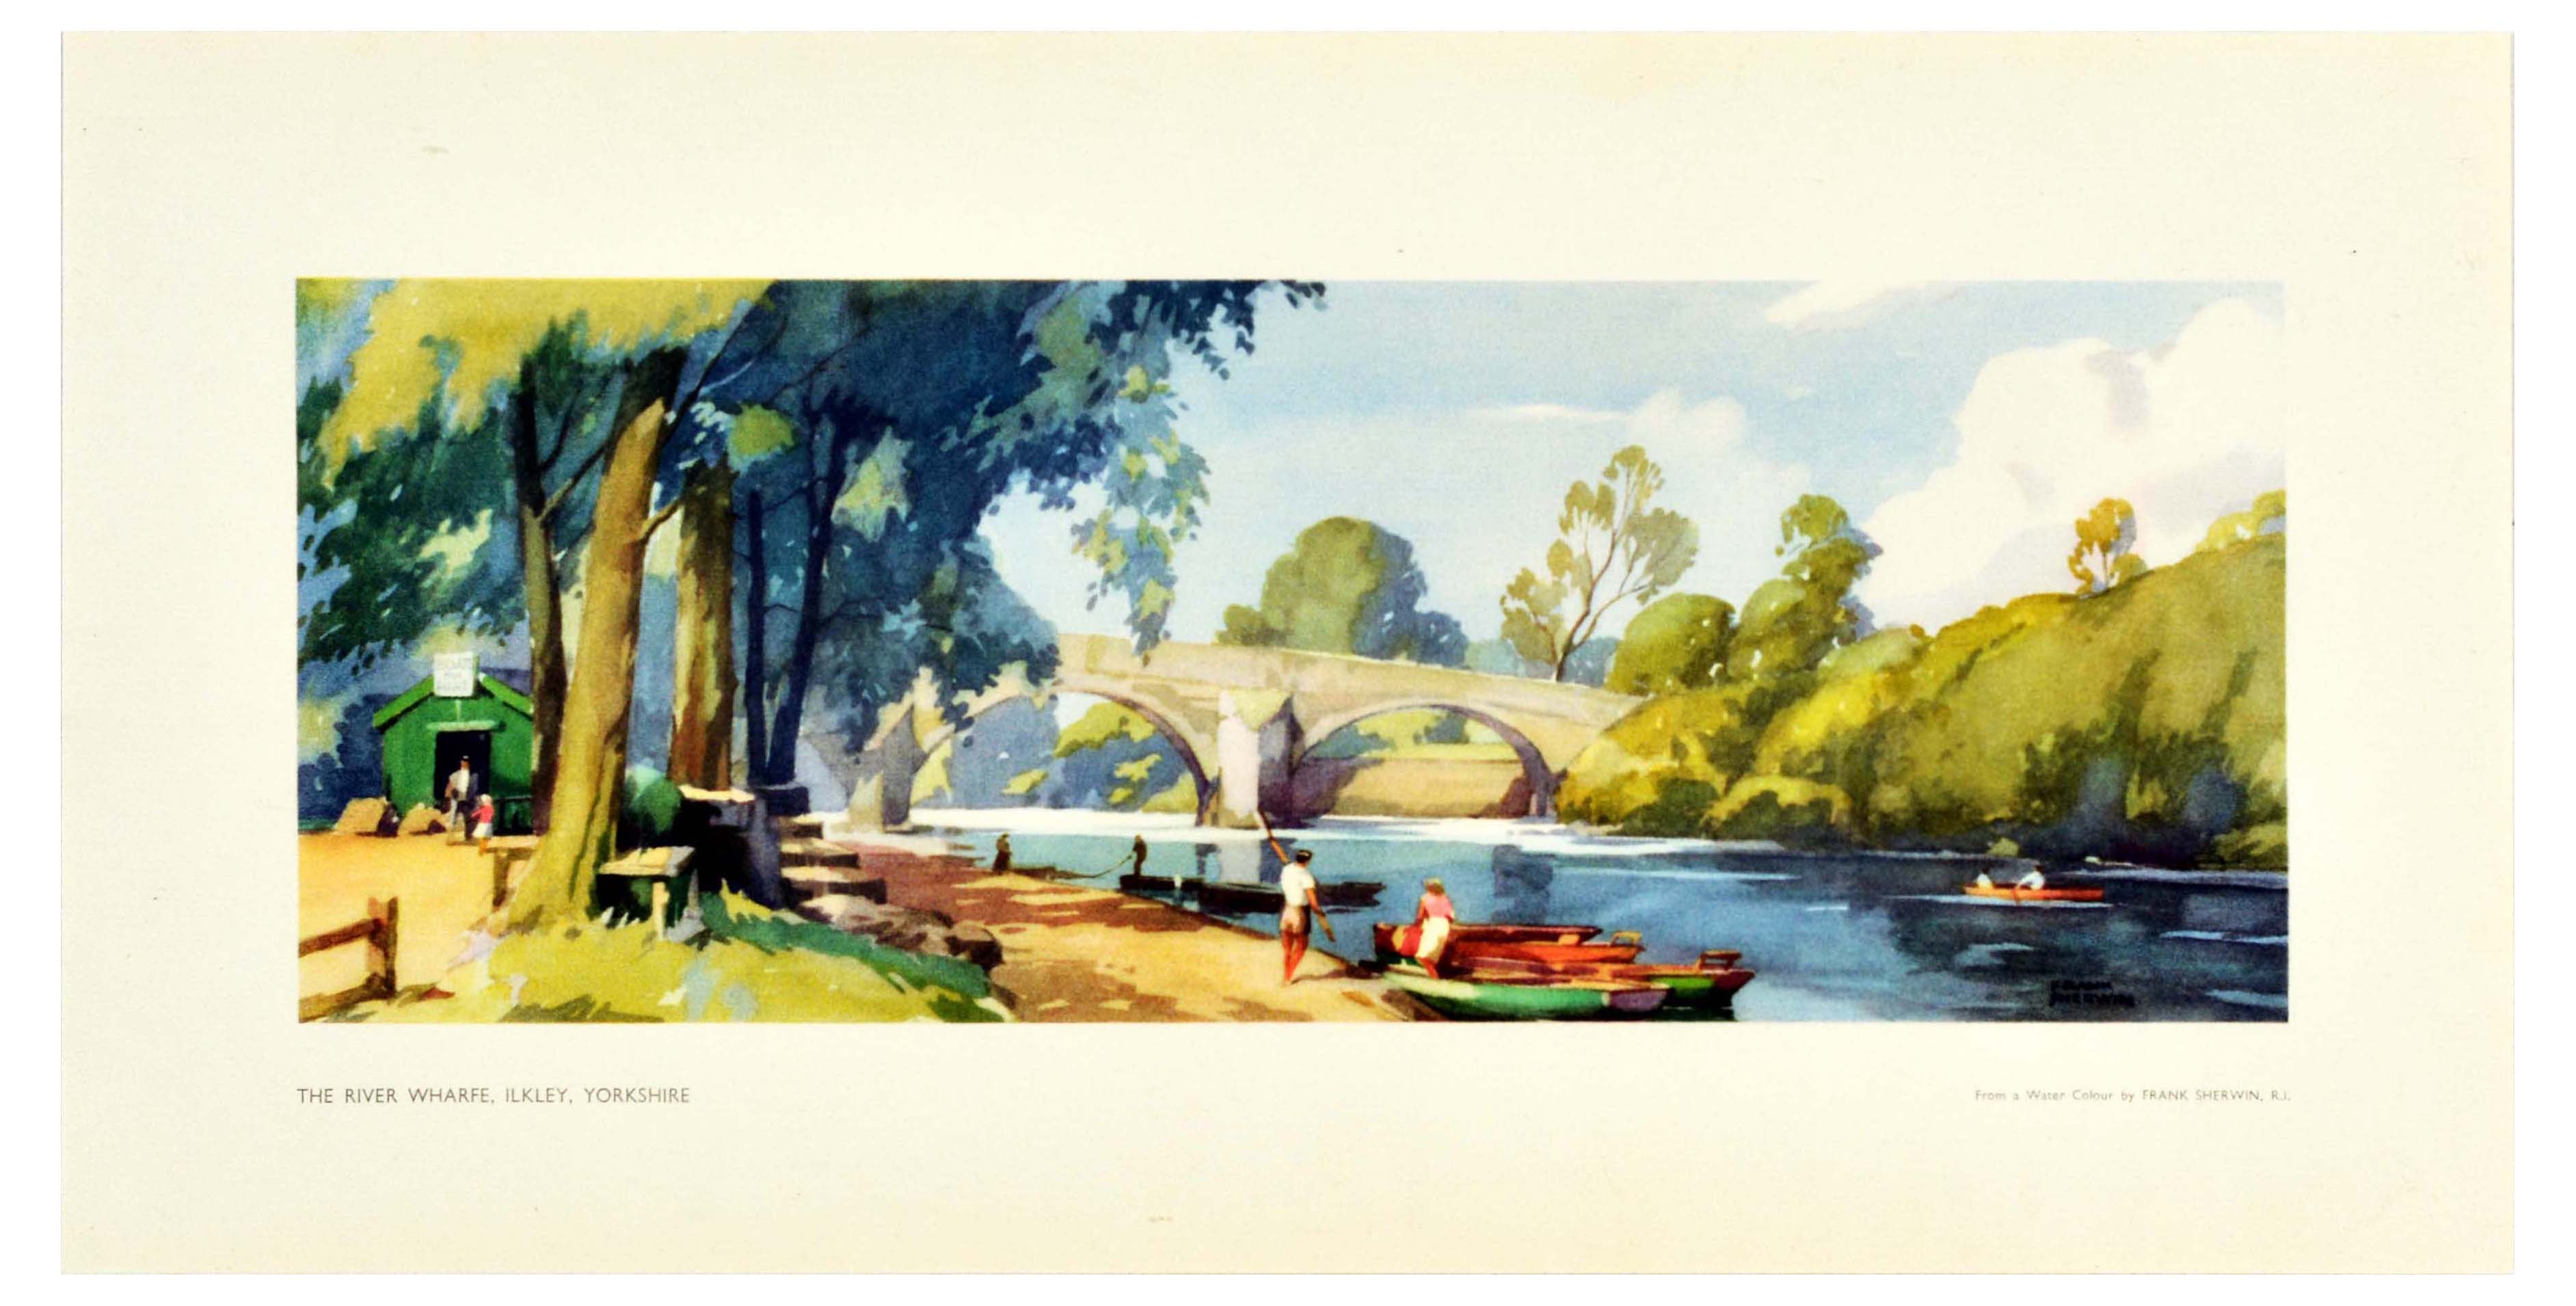 Set Travel Posters LNER Yorkshire Suffolk Essex Ilkley - Image 4 of 4